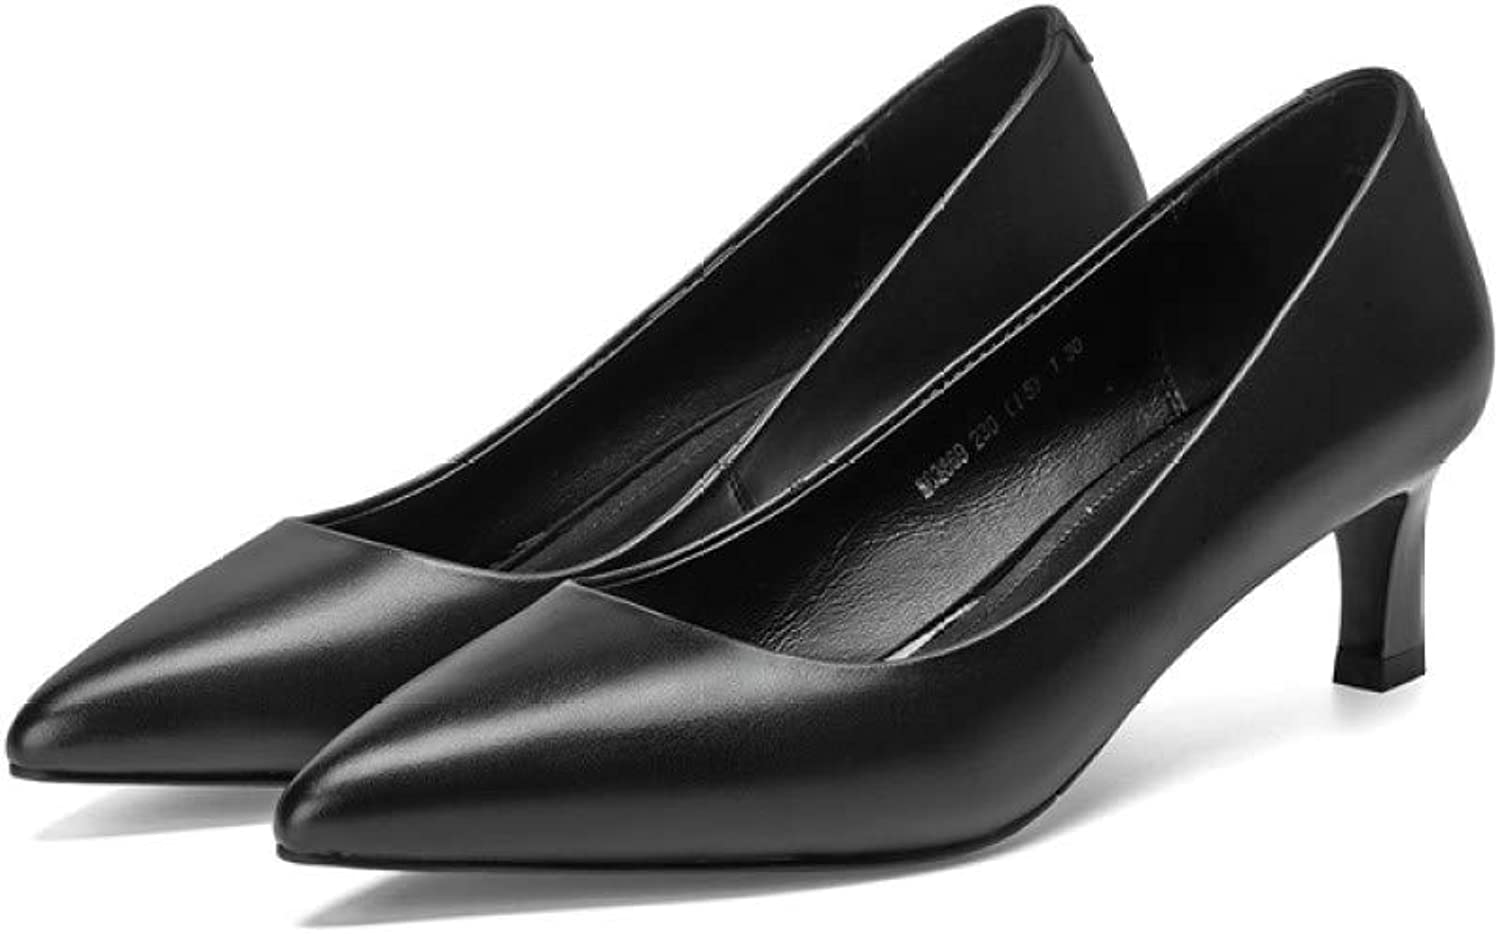 GanQuan2018 Women Black Pumps, Classic Shallow Pointed Toe High Thin Heels Office Dress shoes